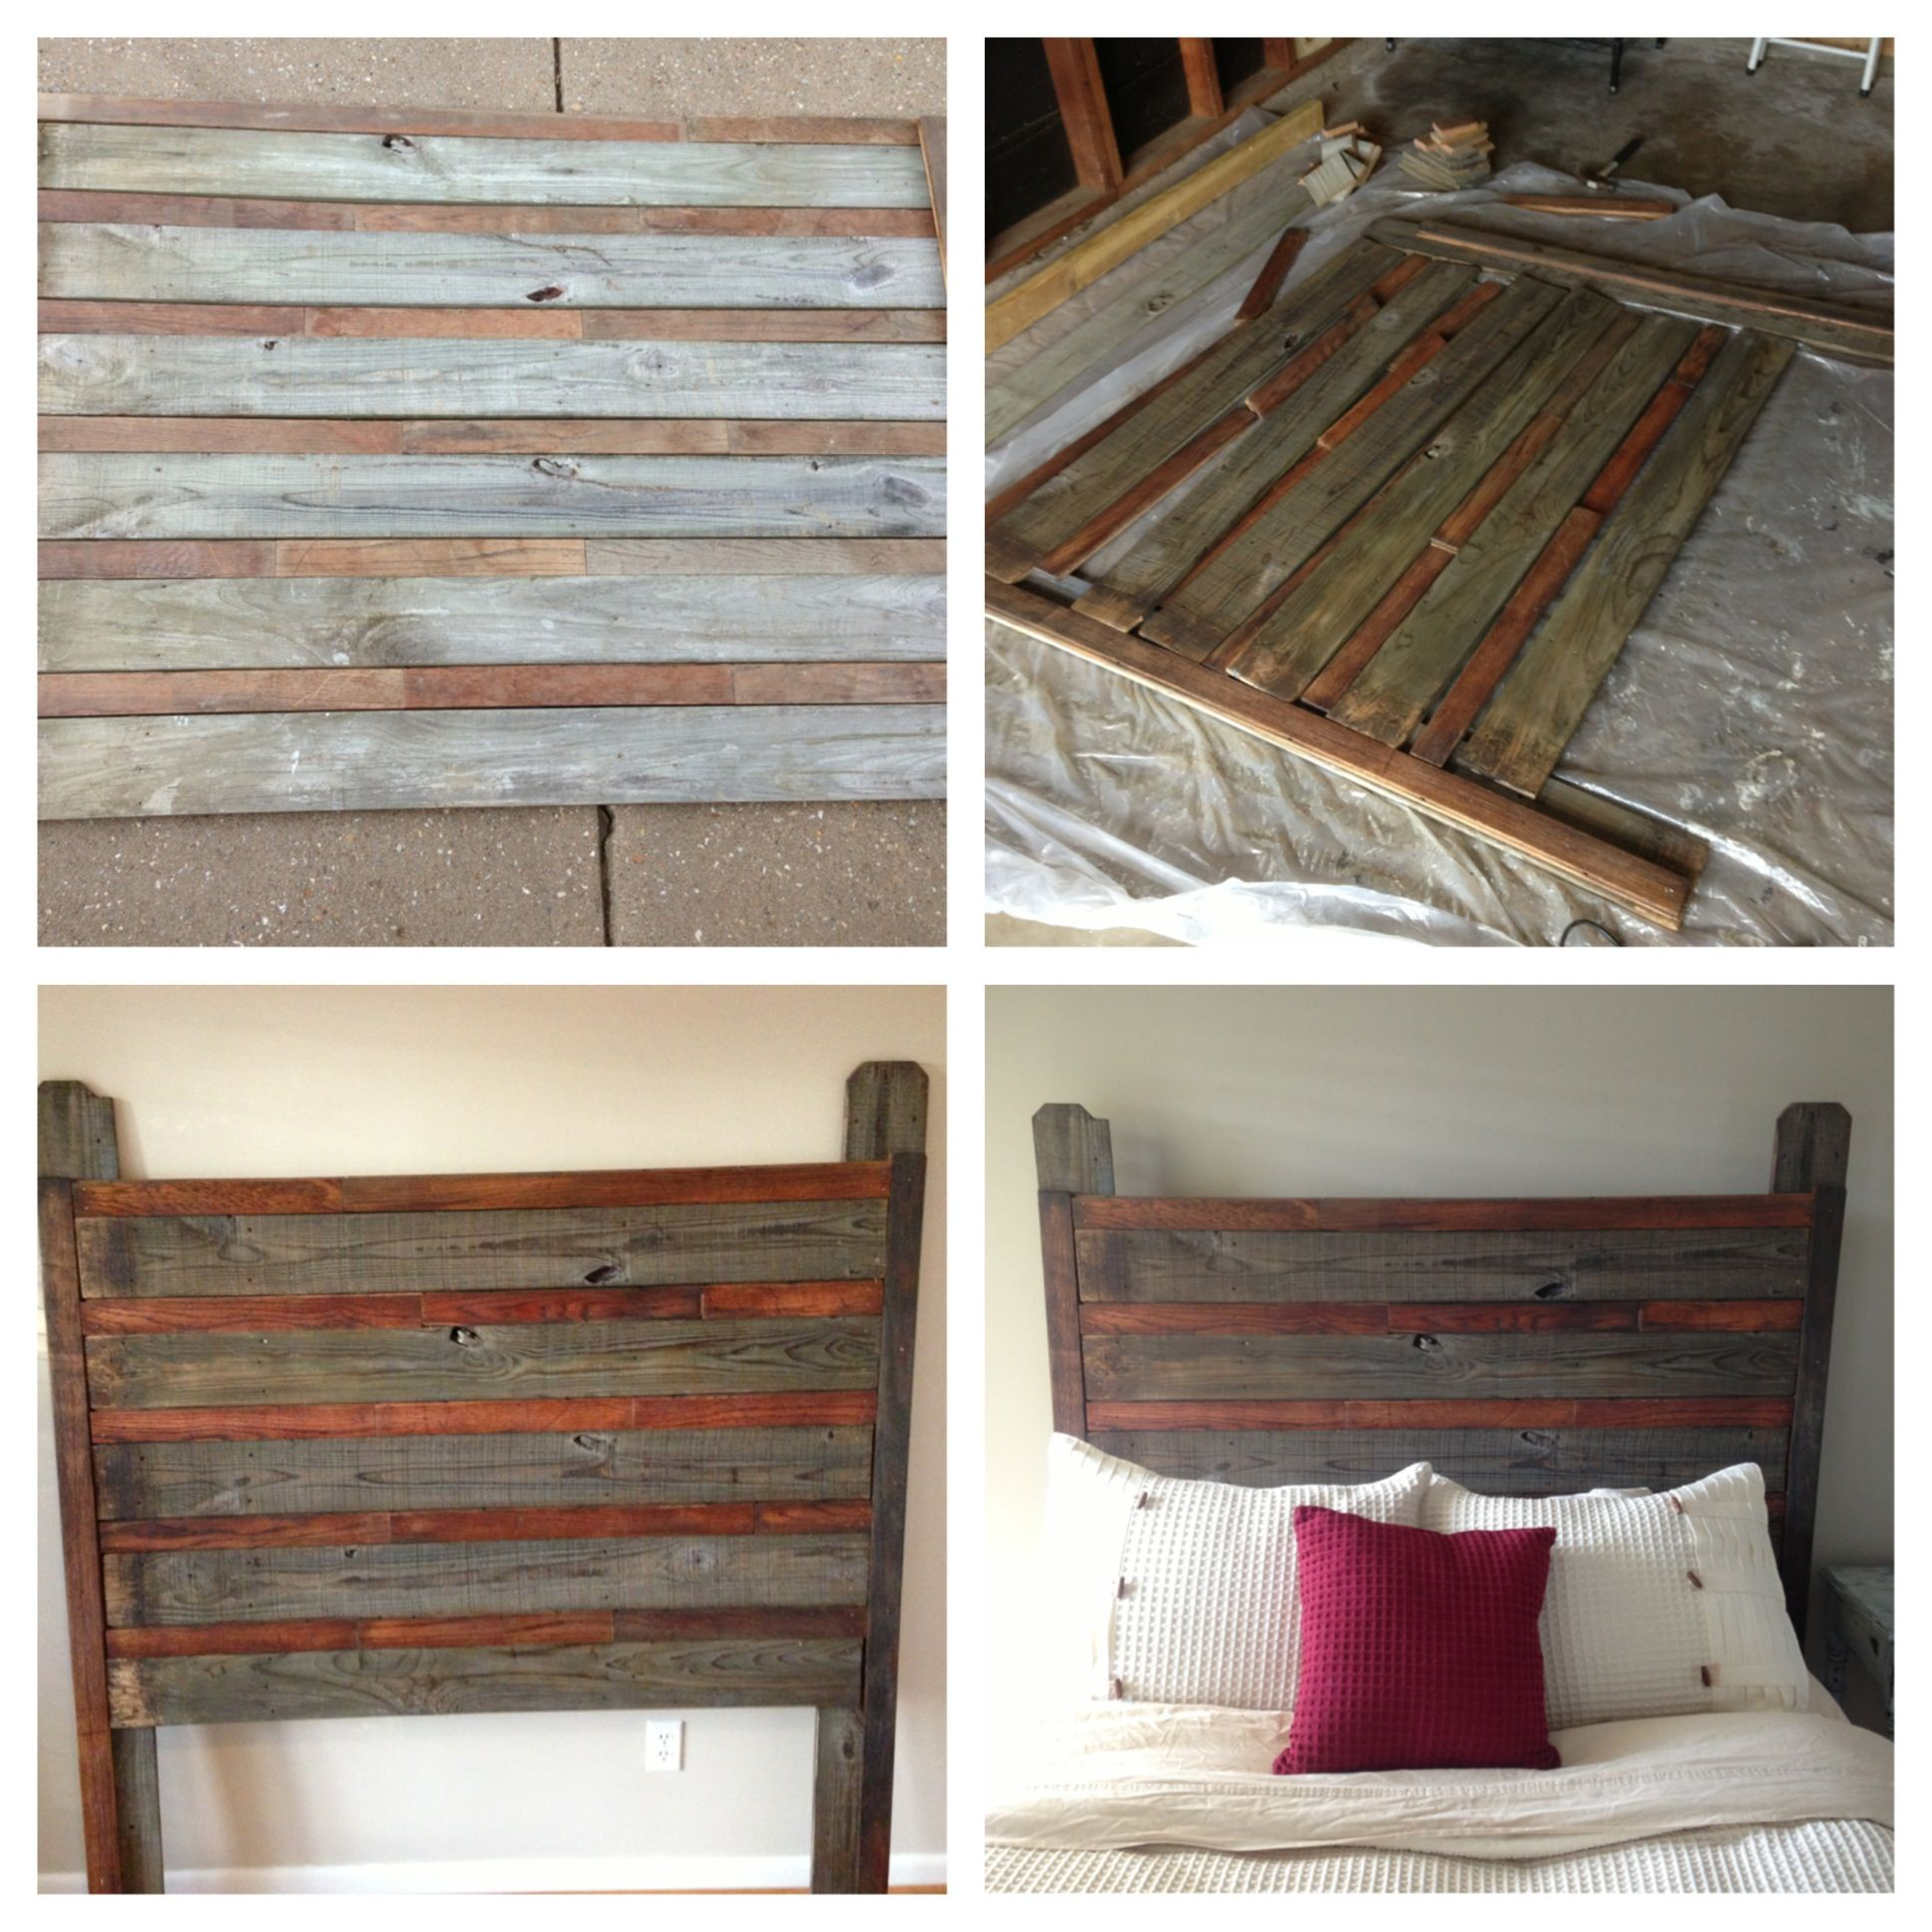 Queen headboard i made from old tongue and groove oak flooring and diy headboards queen headboard i made from old tongue and groove oak flooring and pine fence stain solutioingenieria